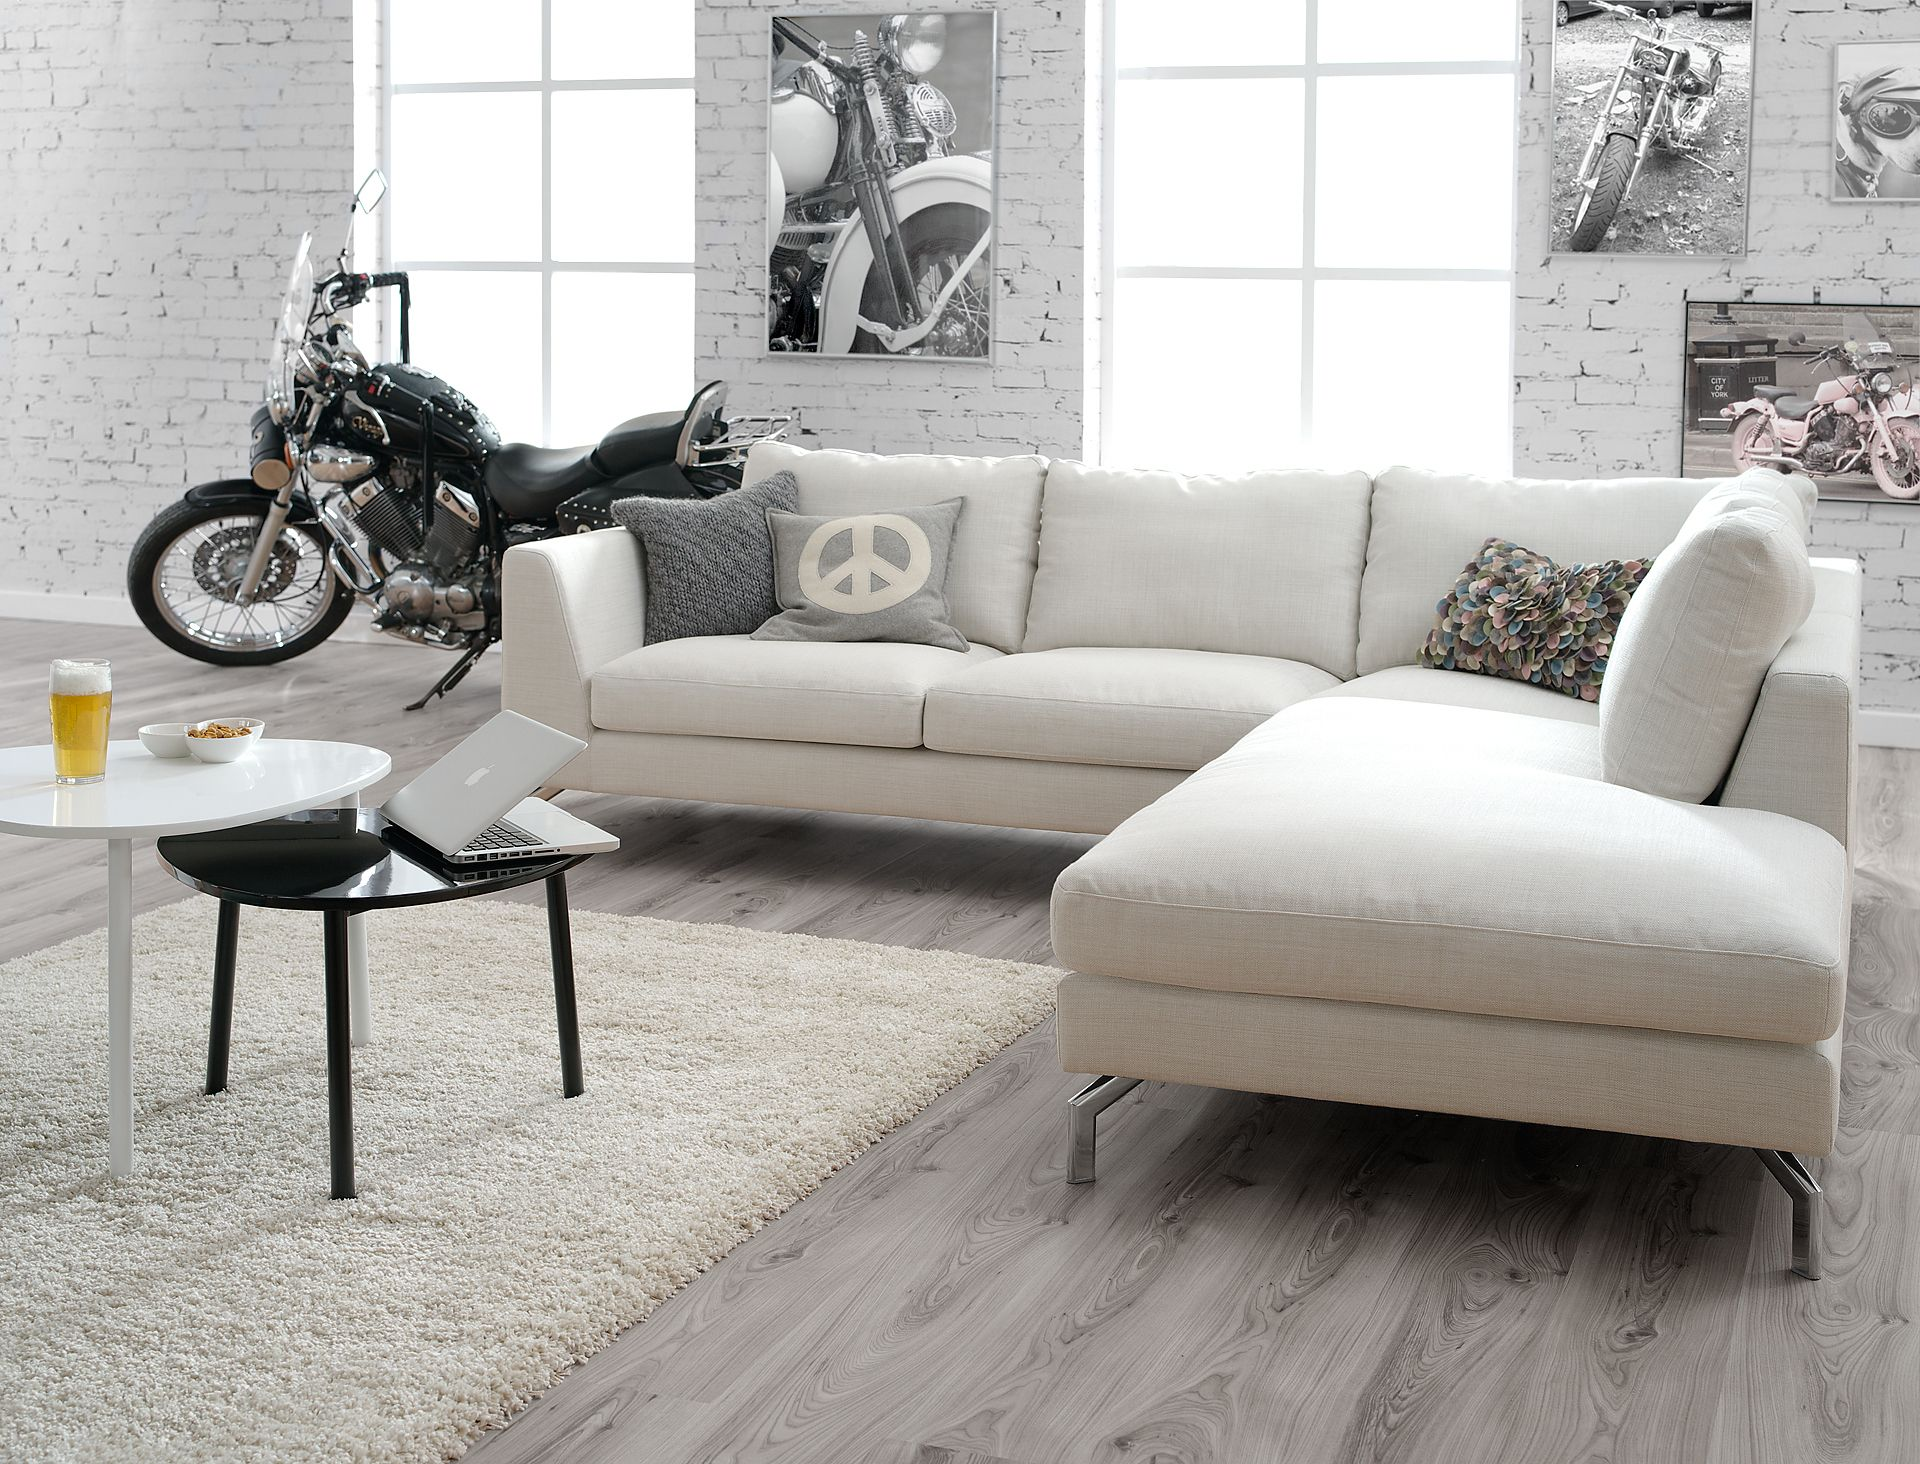 Lshape Sofa  Scandinavian Furniture  Home Inspirations Cool Living Room Sofa Set Designs Review